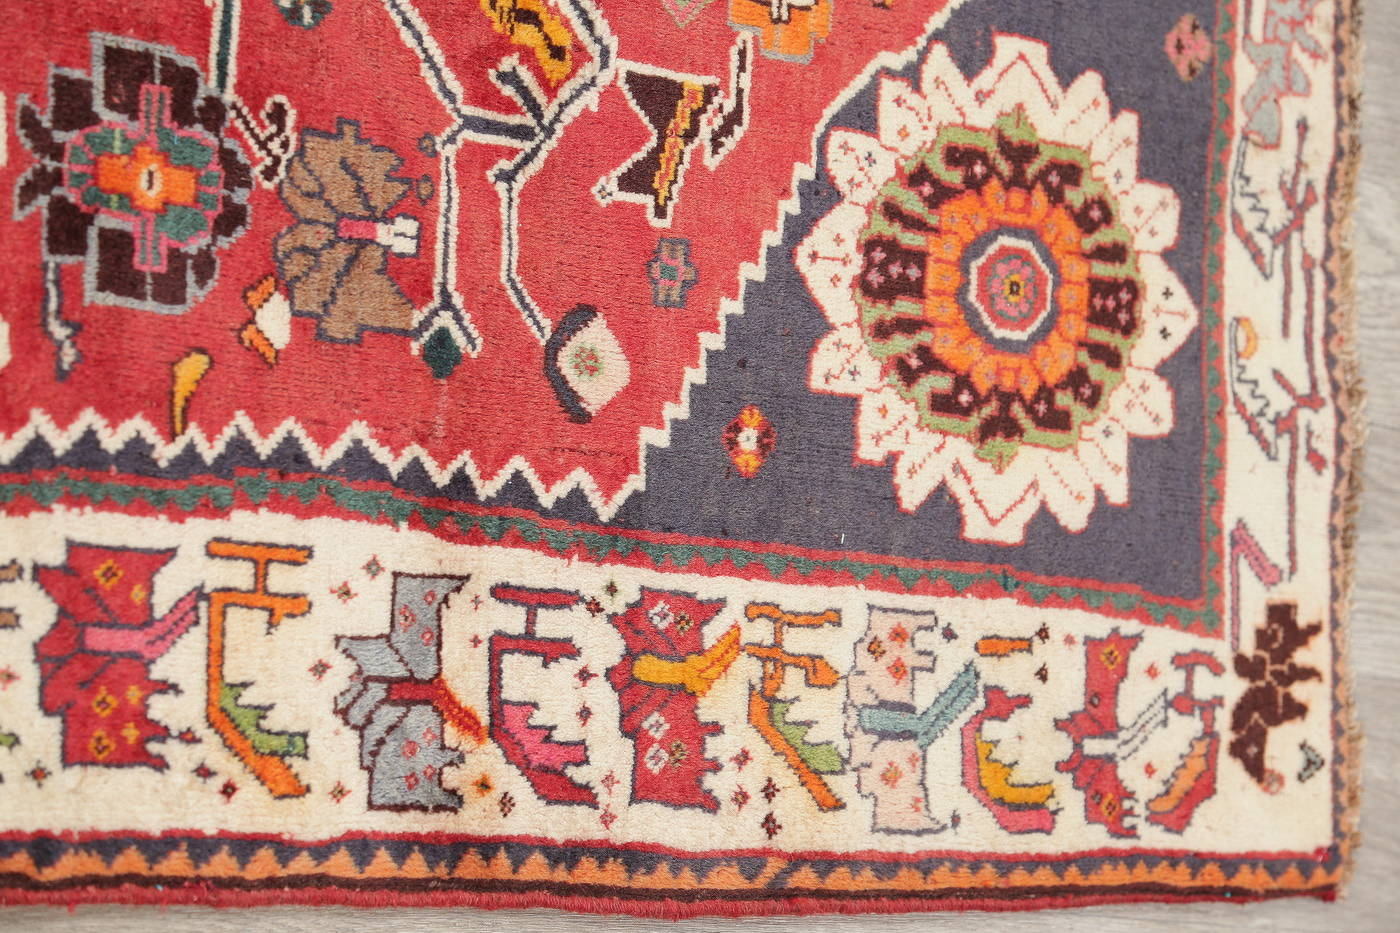 Hand-Knotted Red Tribal Kashkoli Persian Area Rug Wool 4x6